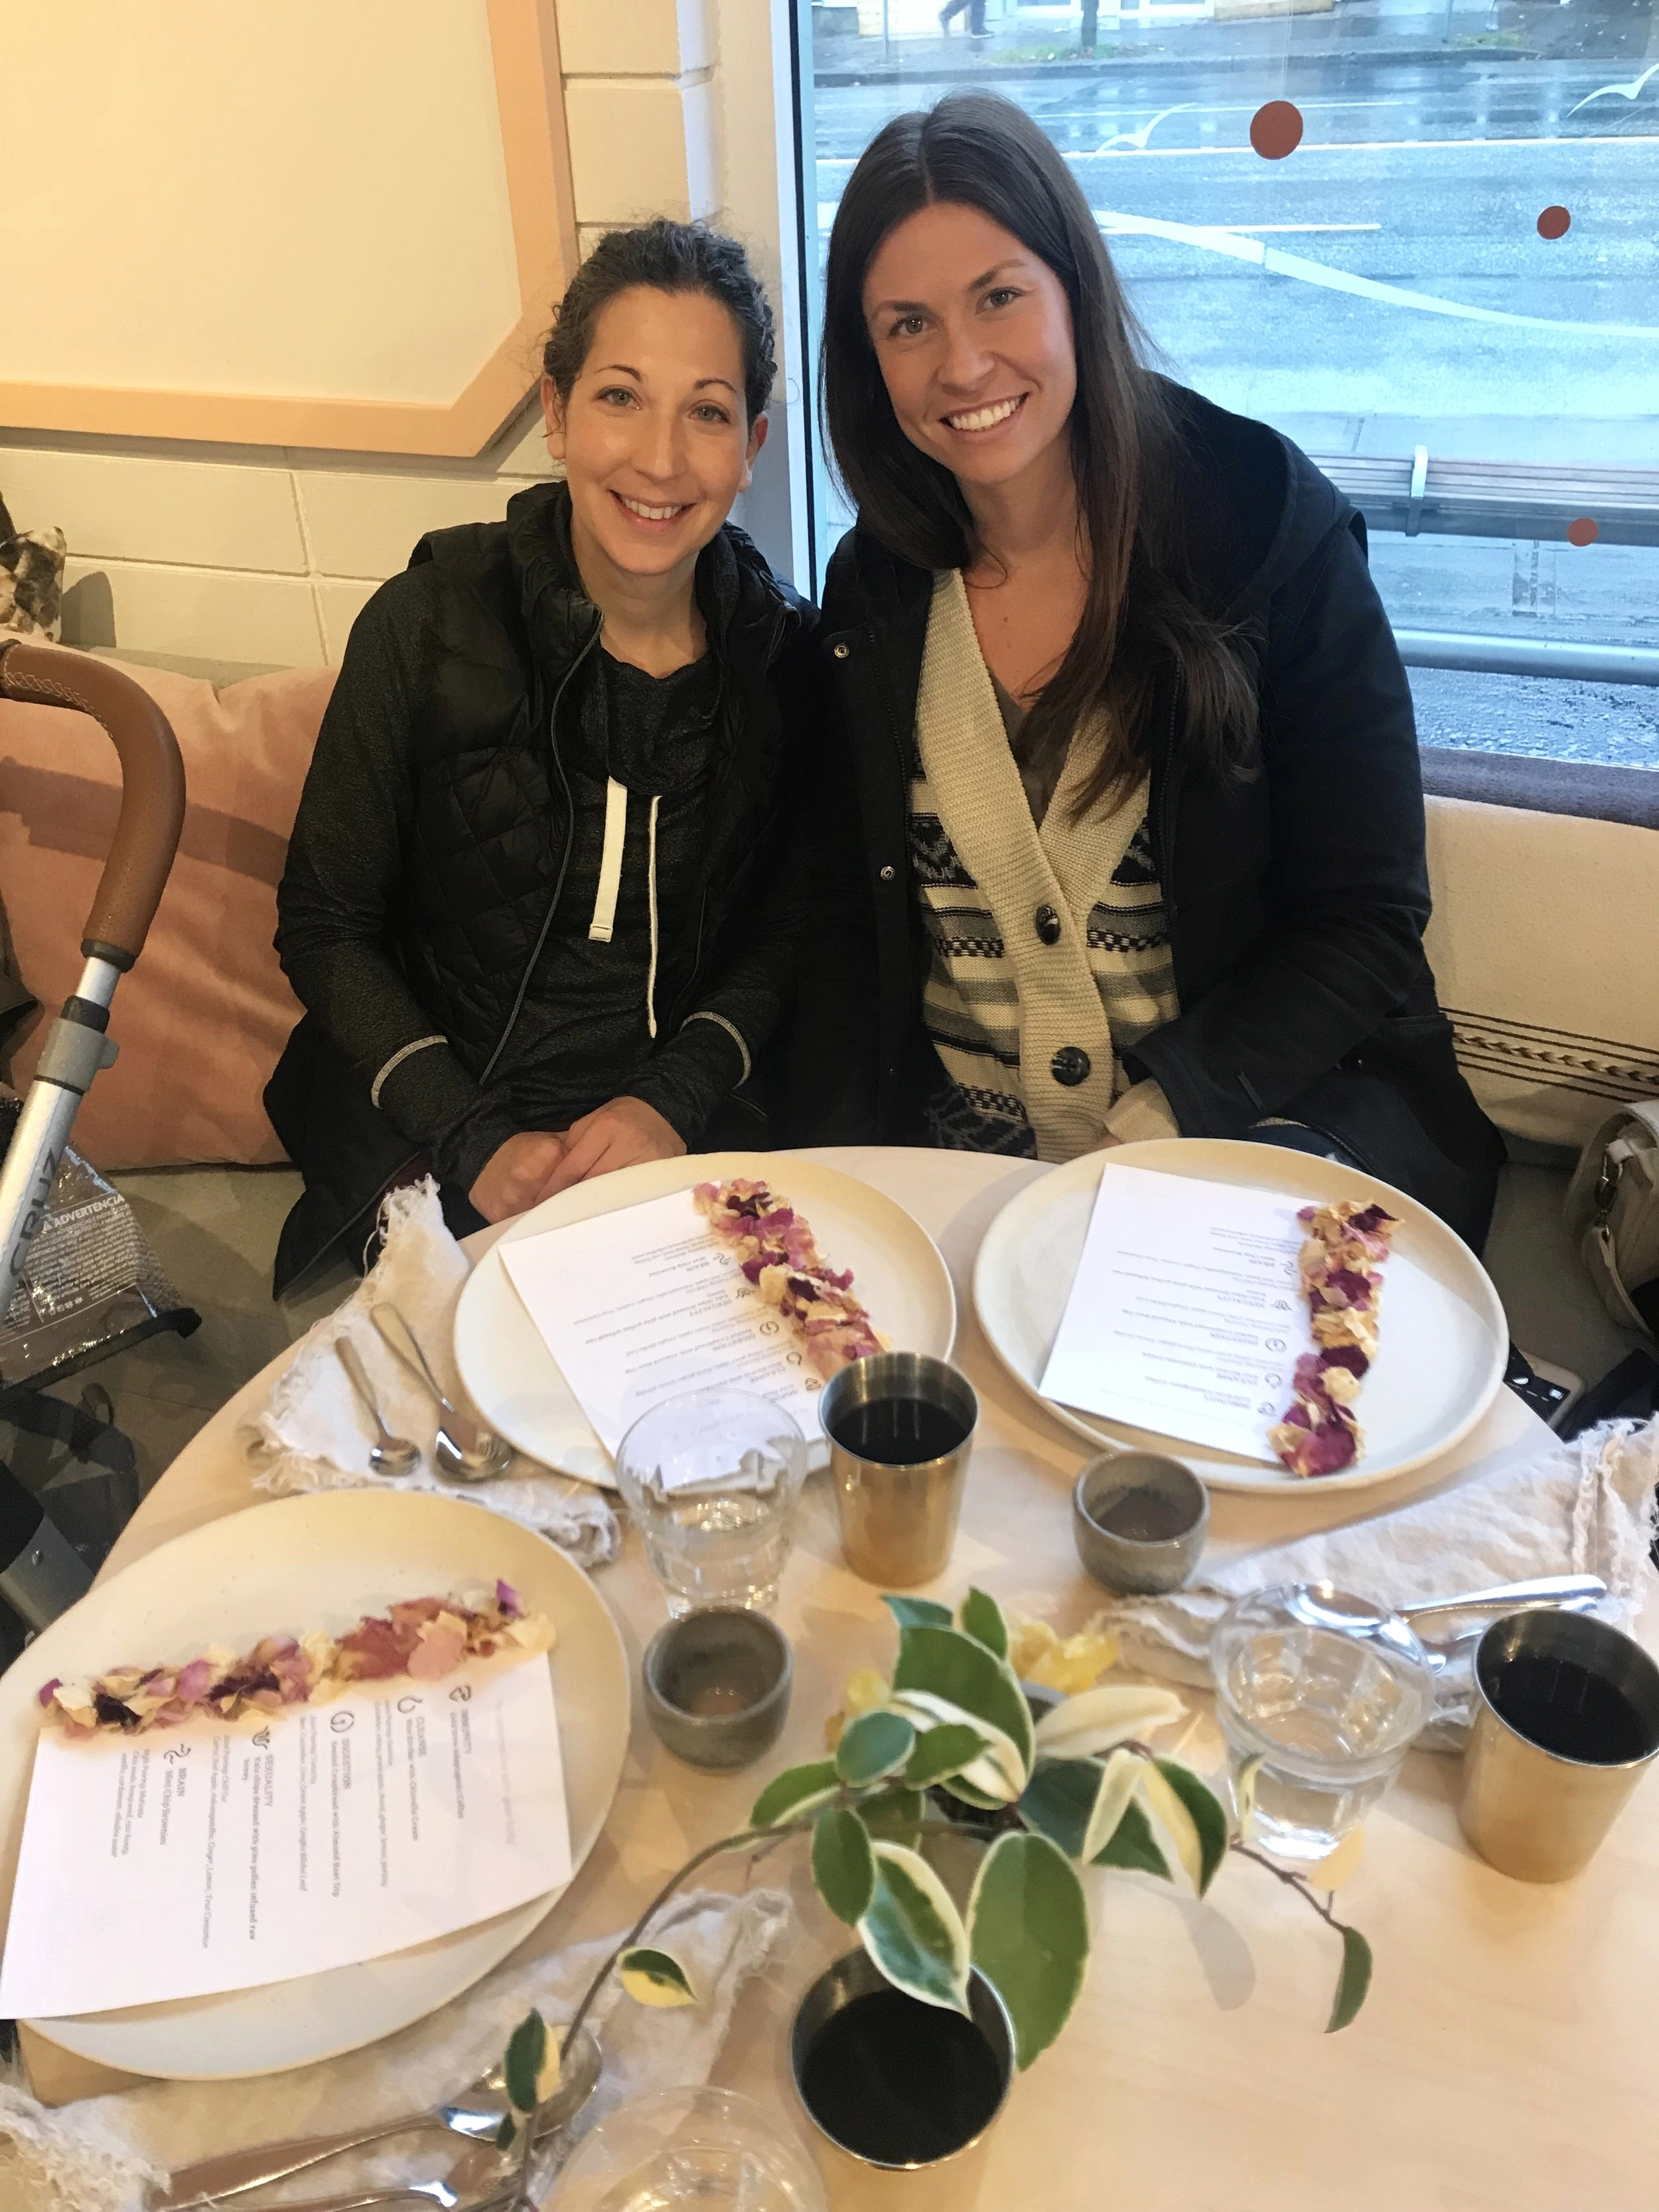 Tara and I enjoying a special live breakfast filled with adaptogens